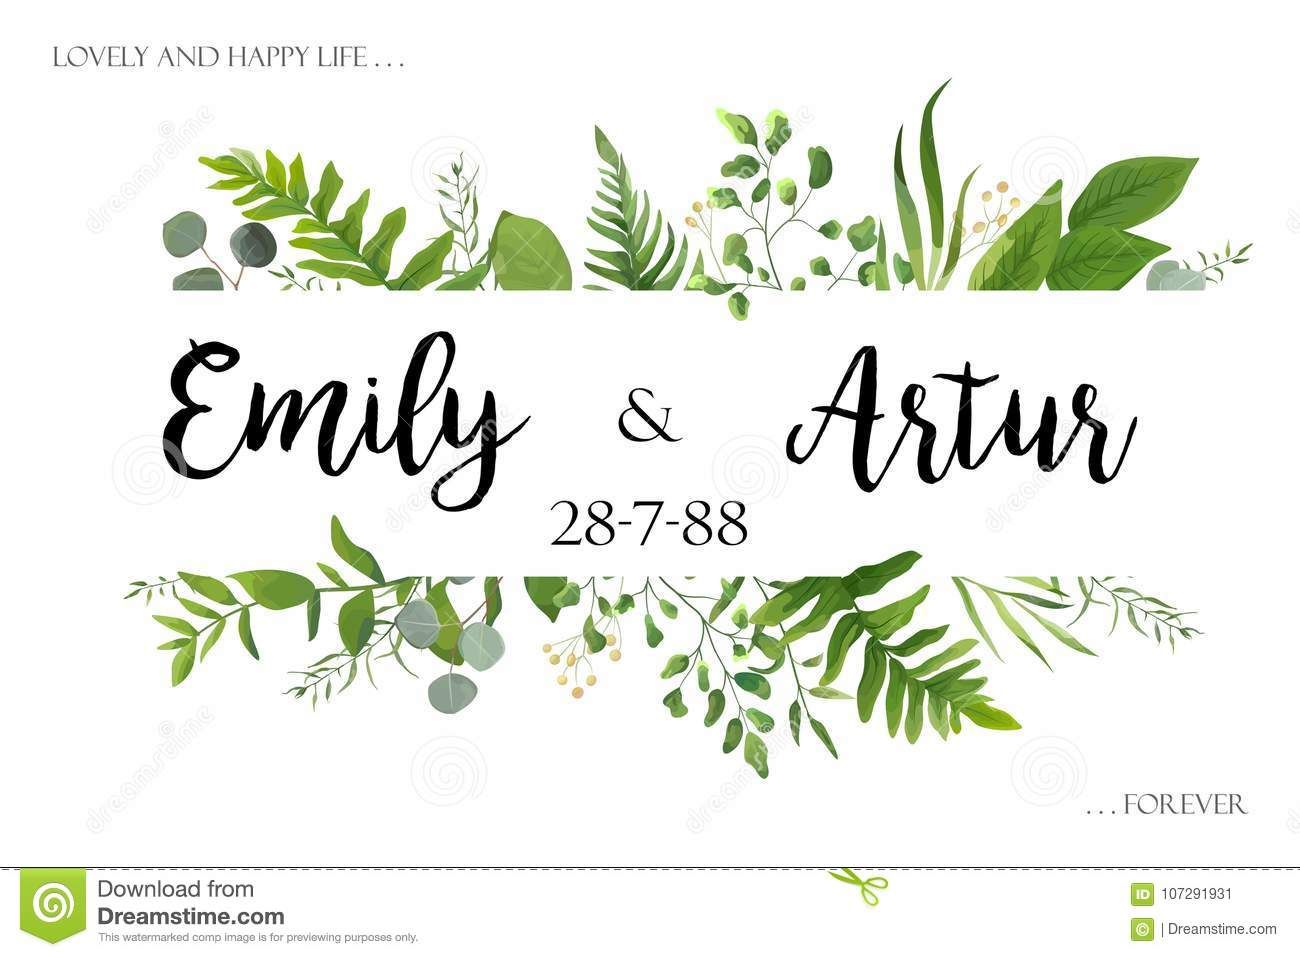 Wedding invite invitation card vector floral greenery design: Forest fern frond, Eucalyptus branch green leaves foliage herb